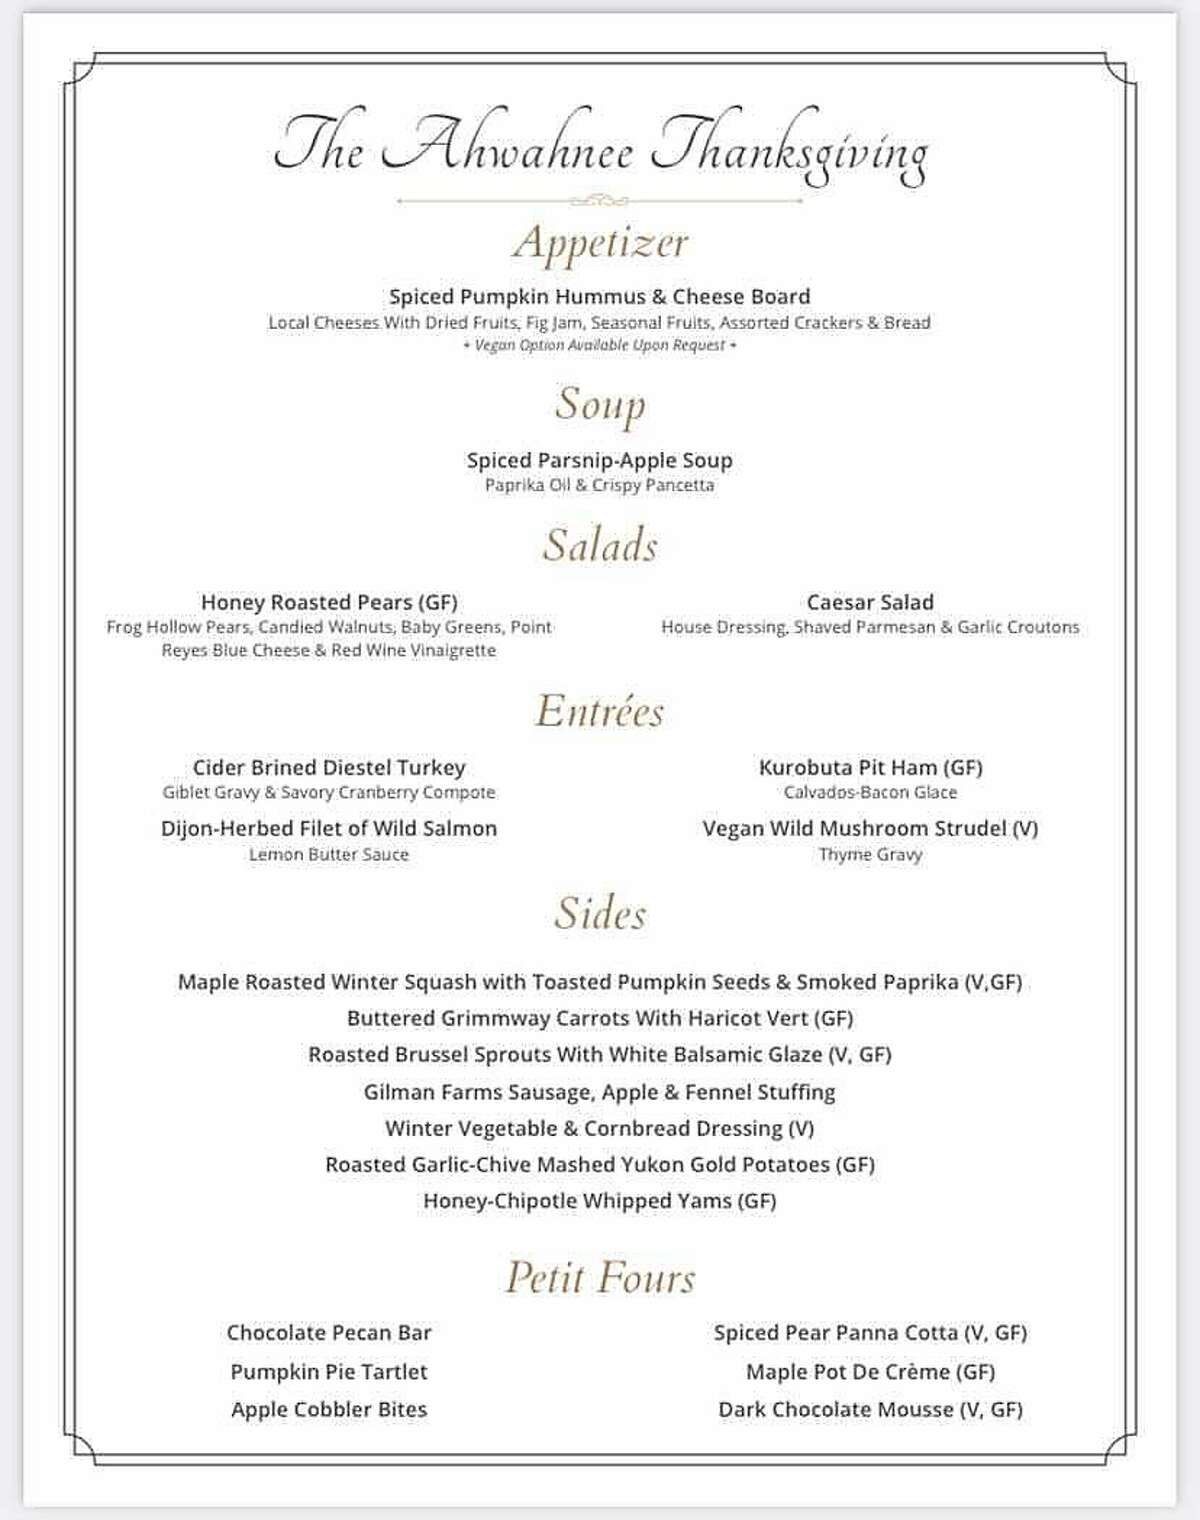 The menu from the Ahwahnee Hotel's 2020 Thanksgiving feast.